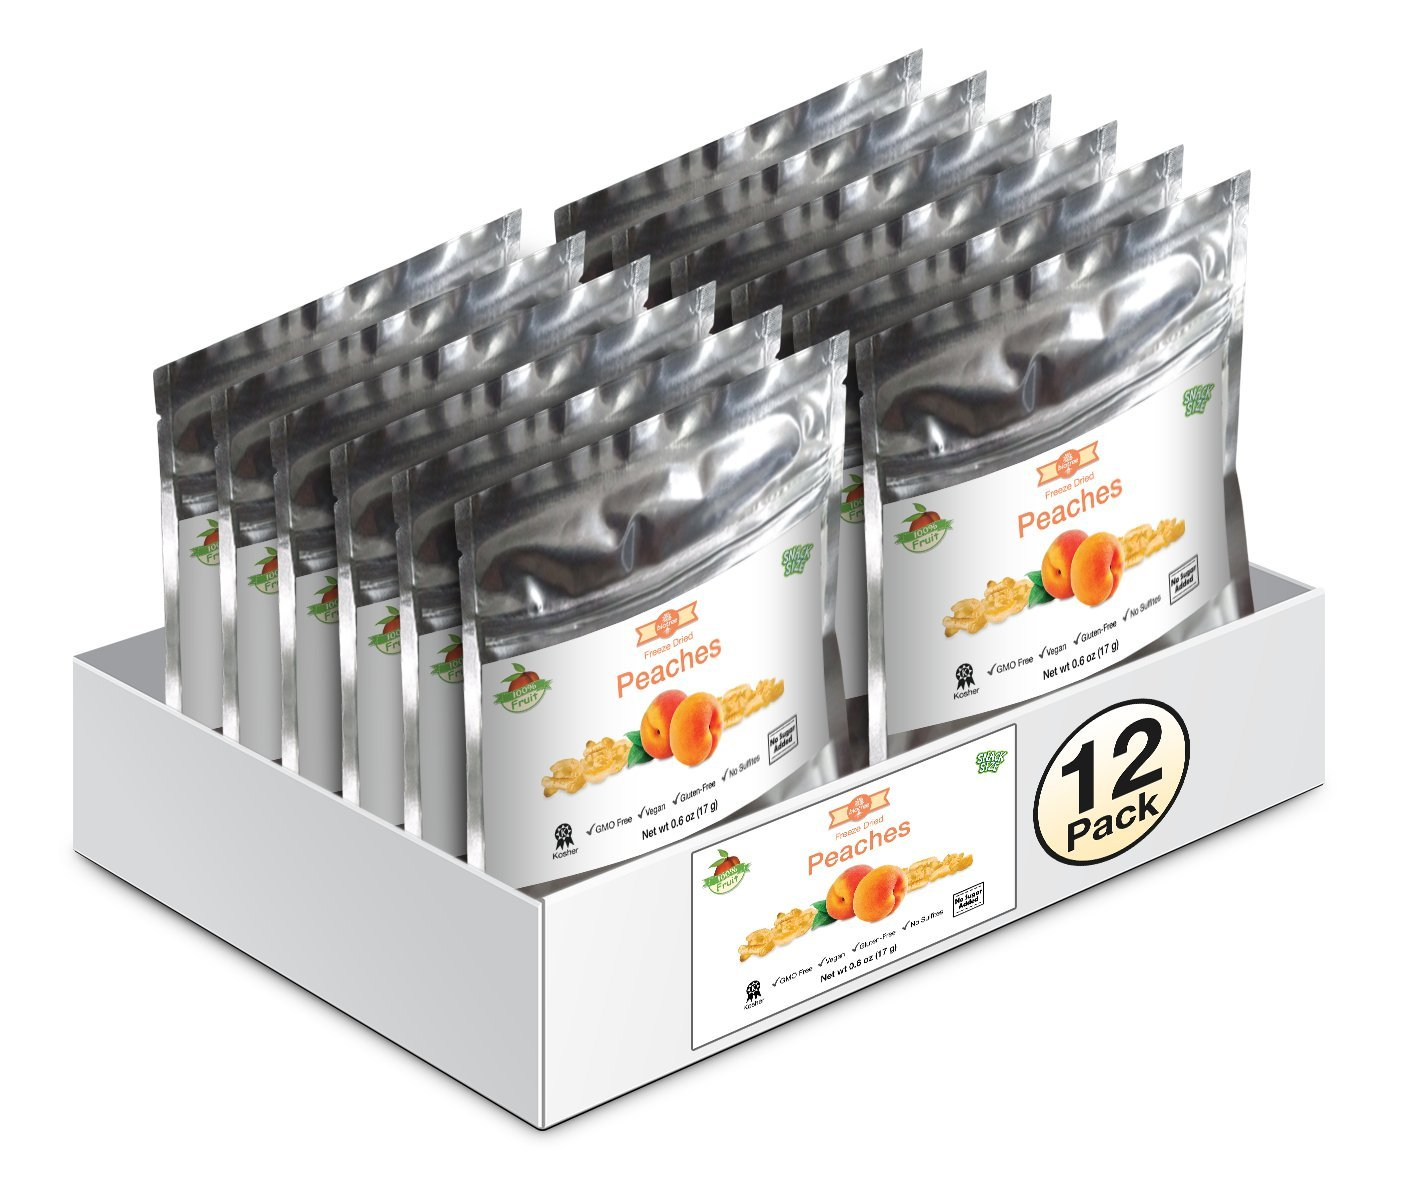 12 Pack of Snack Size Delicious Peaches - All Natural 100% Freeze Dried Peaches: No Added Sugar or Preservatives, Paleo, Gluten-Free. Healthy Snack for Children & Adults (0.4 Oz)